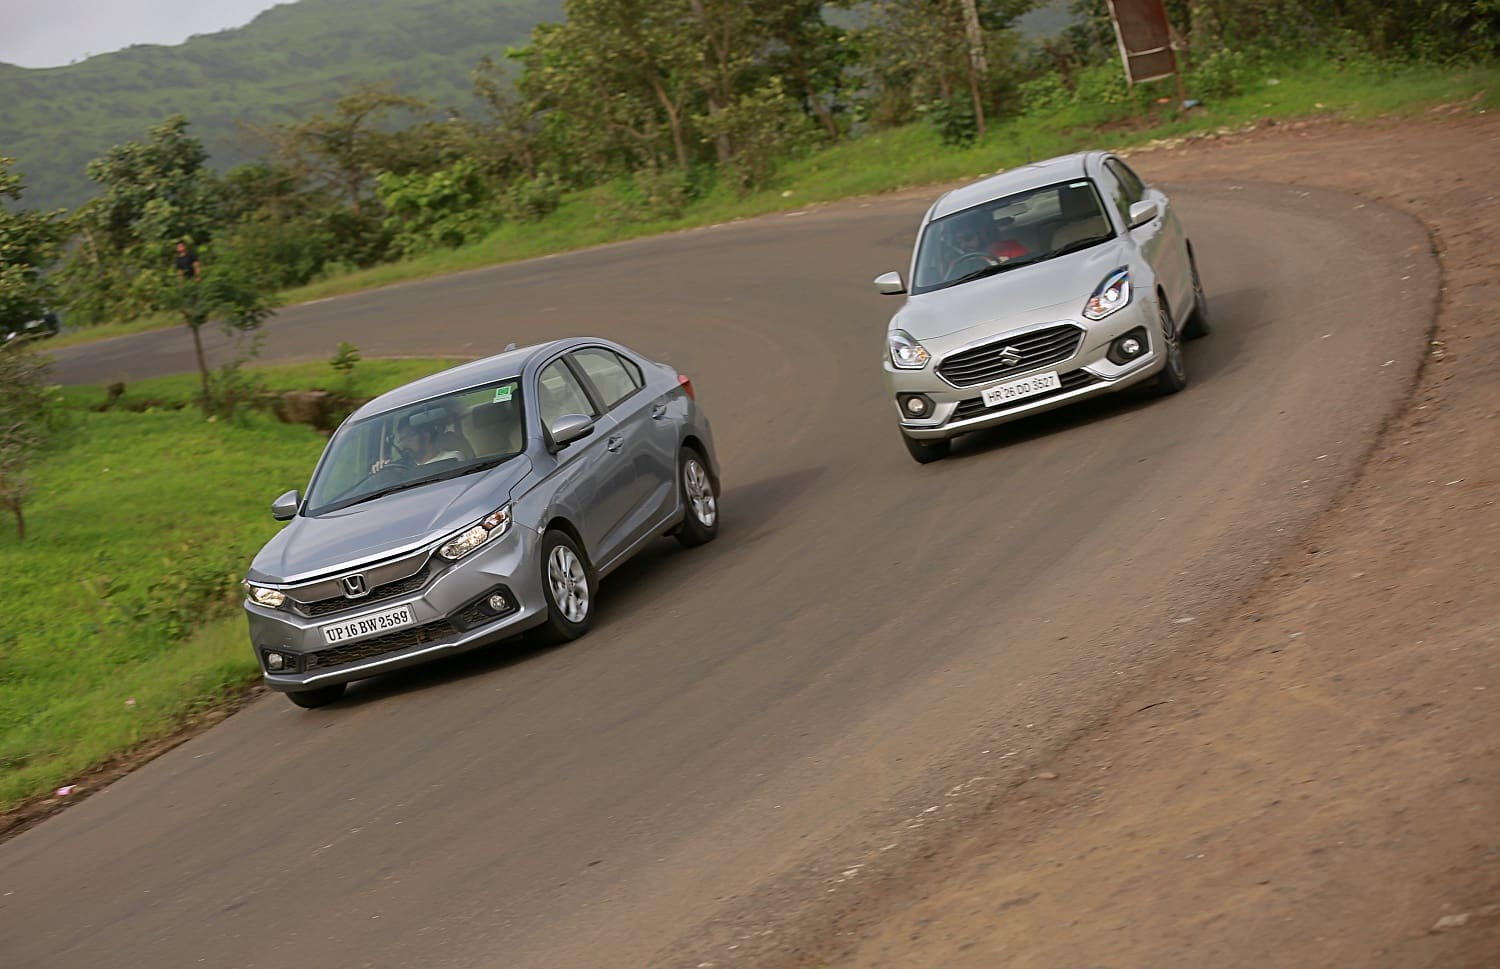 Maruti Dzire vs Honda Amaze 2018: Diesel Comparison Review